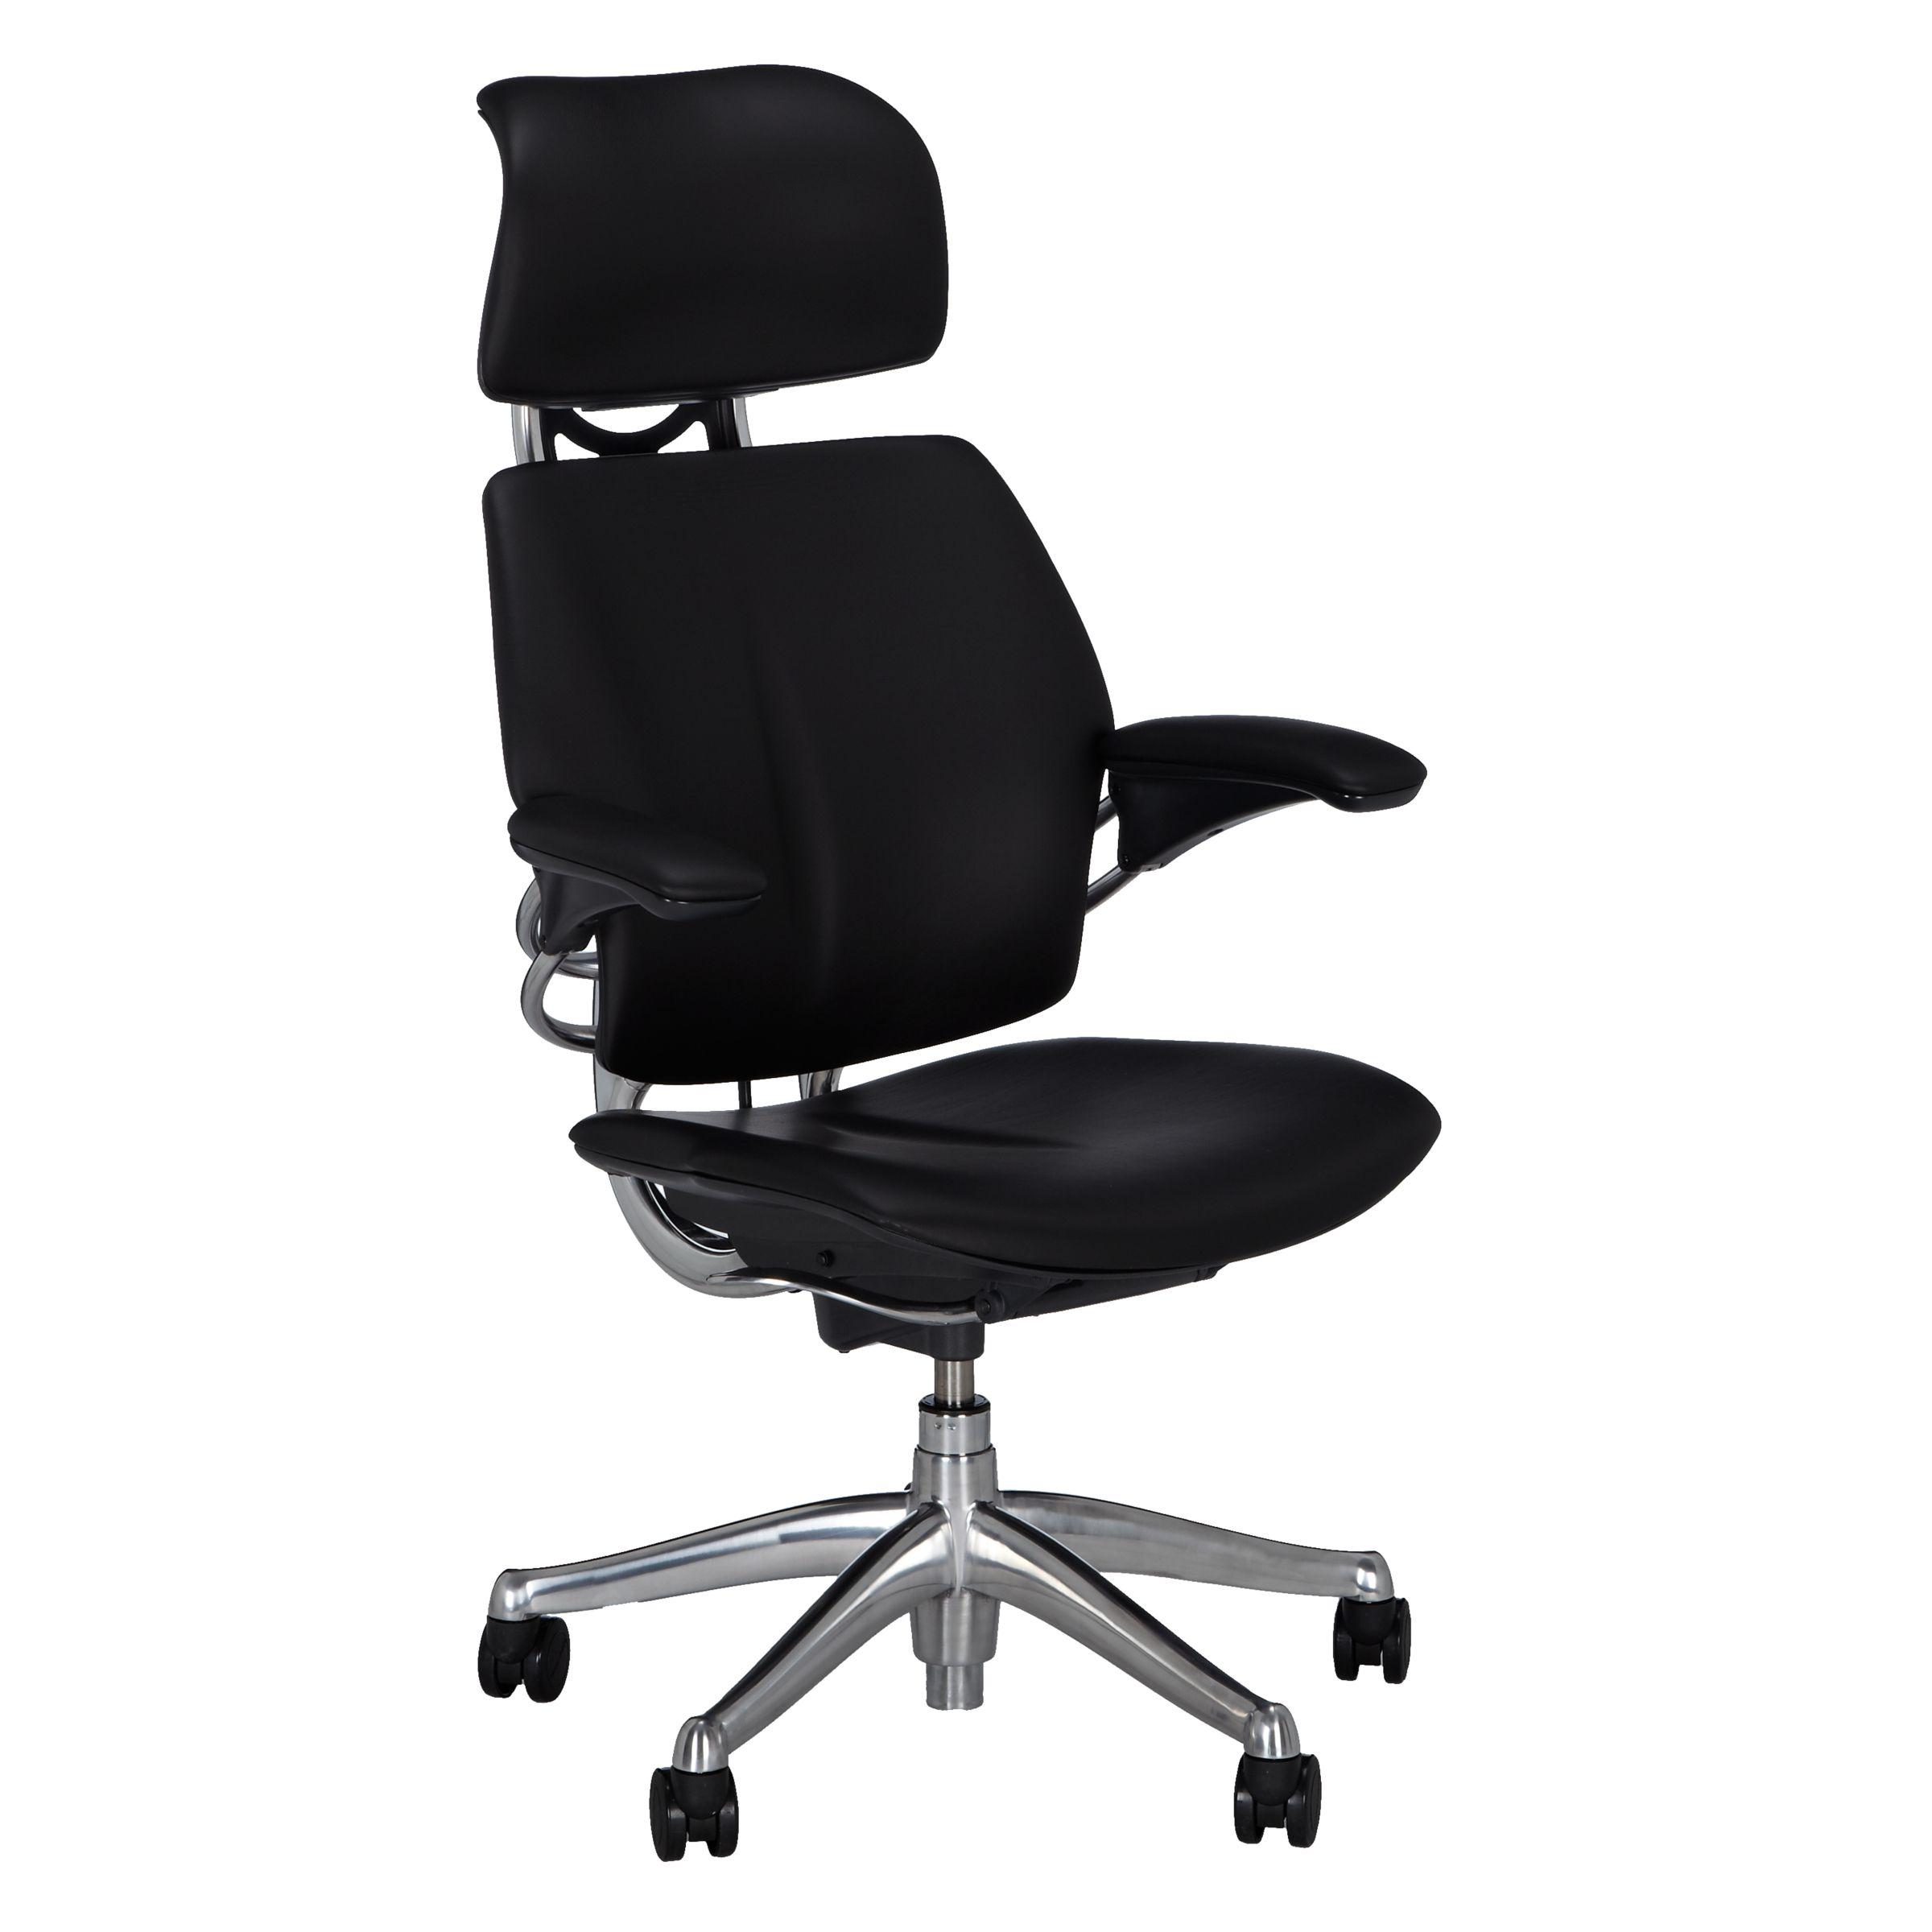 freedom task chair with headrest vanity back and arms humanscale office at john lewis partners buyhumanscale black online johnlewis com